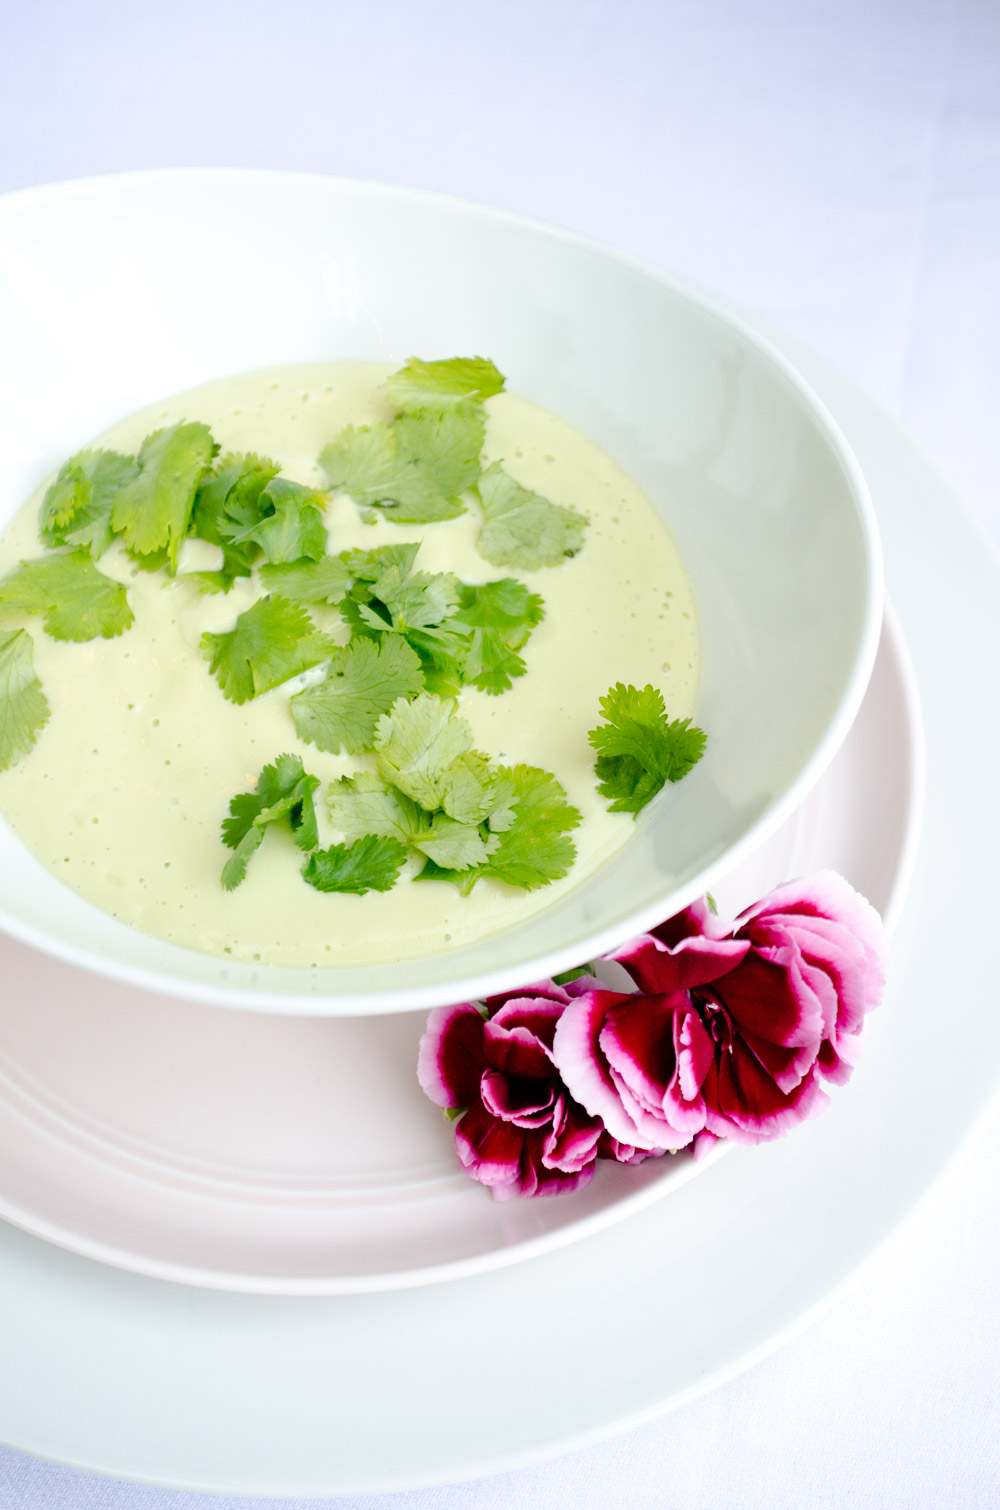 This delicious chilled avocado soup recipe is quick and easy to make ...